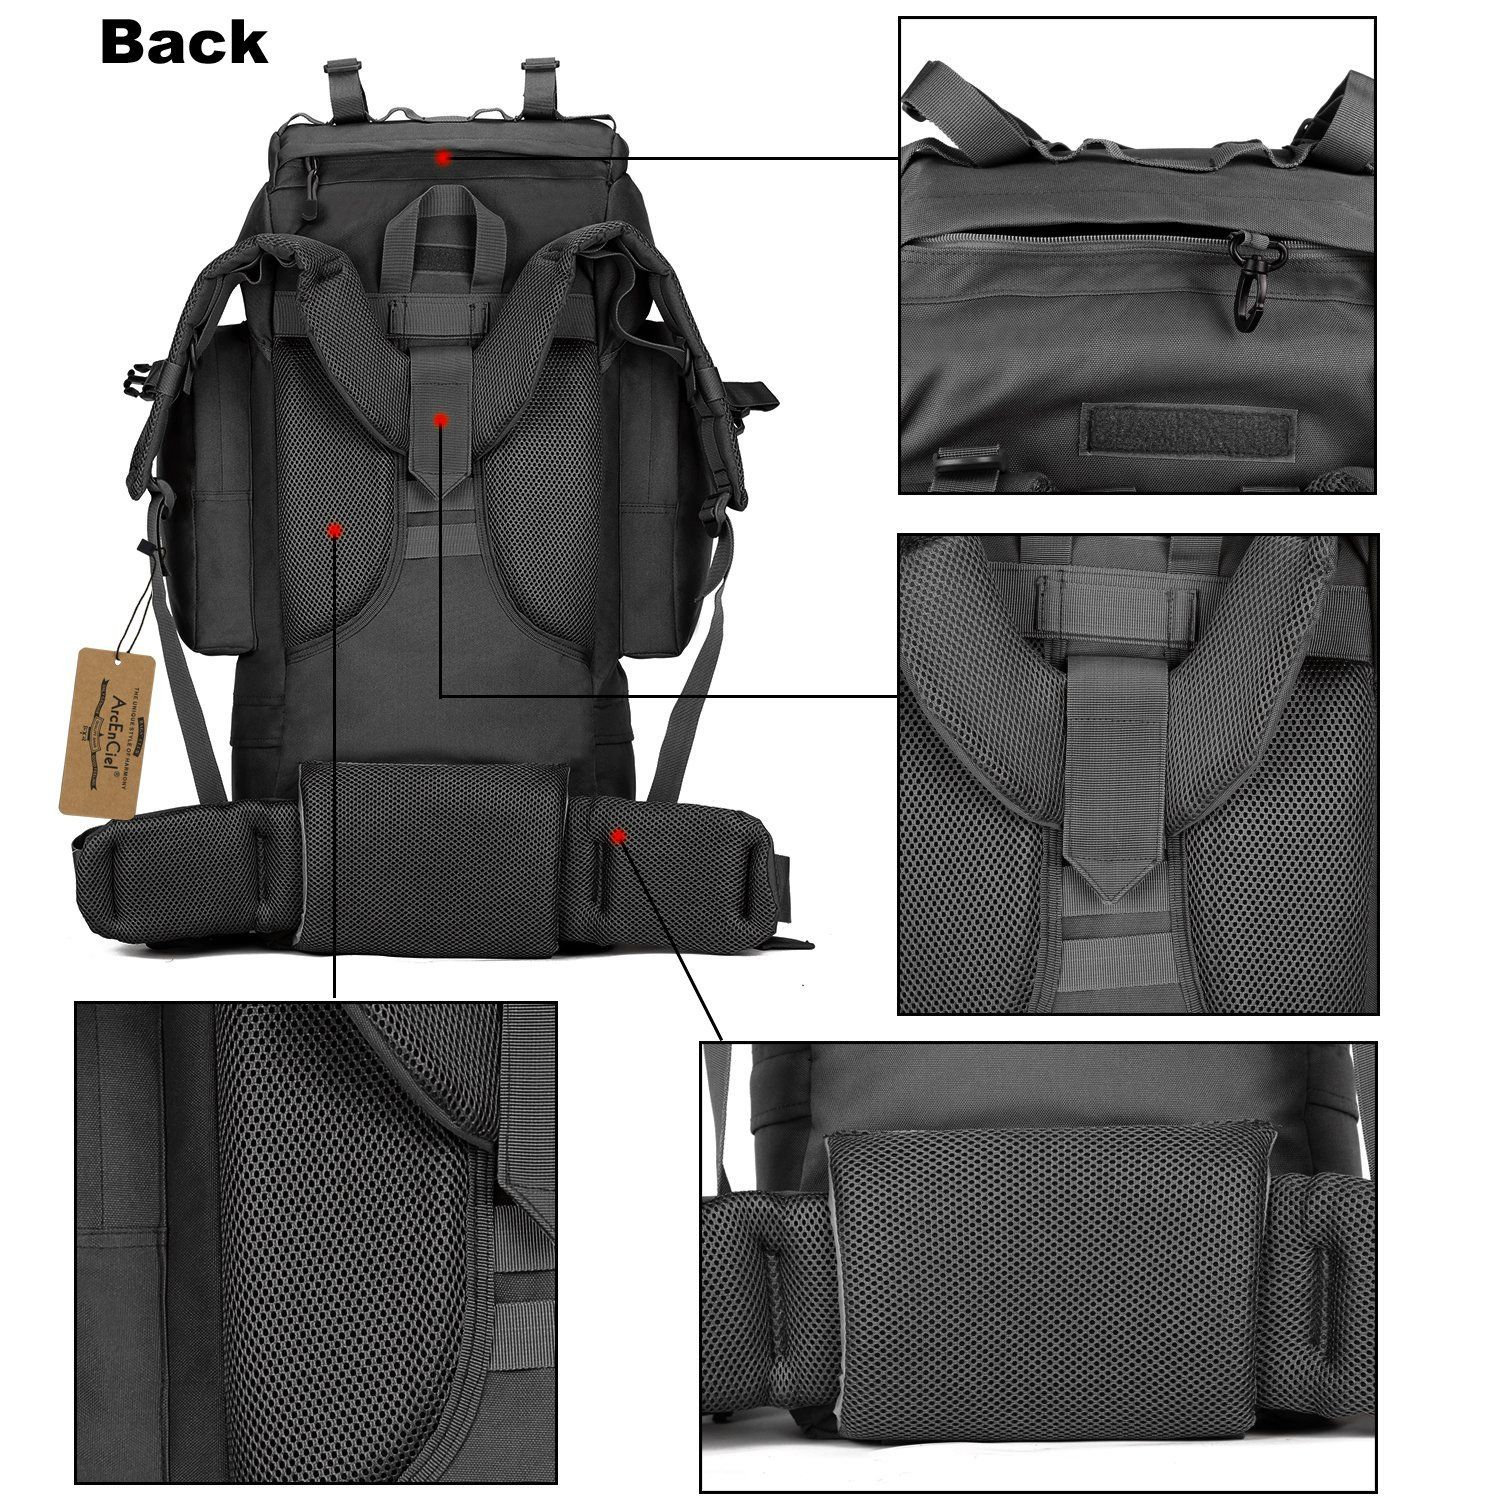 eb88d54b1952 ArcEnCiel 65L Waterproof Tactical Giant Hiking Camping Backpack with Rain  Cover    Additional info  CampingGear